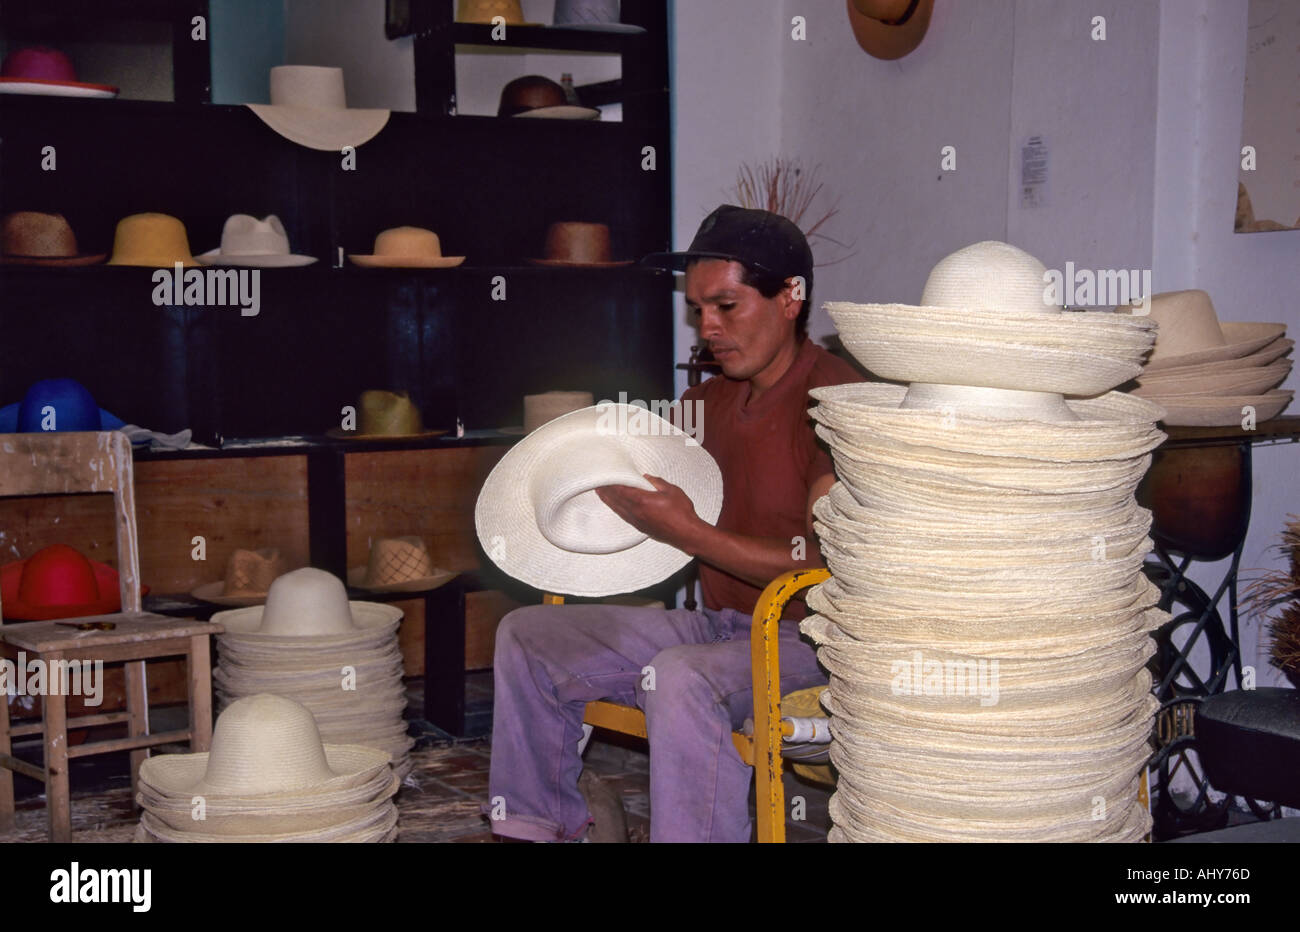 Ecuadorian Hats Stock Photos   Ecuadorian Hats Stock Images - Alamy 4c1b77d9962